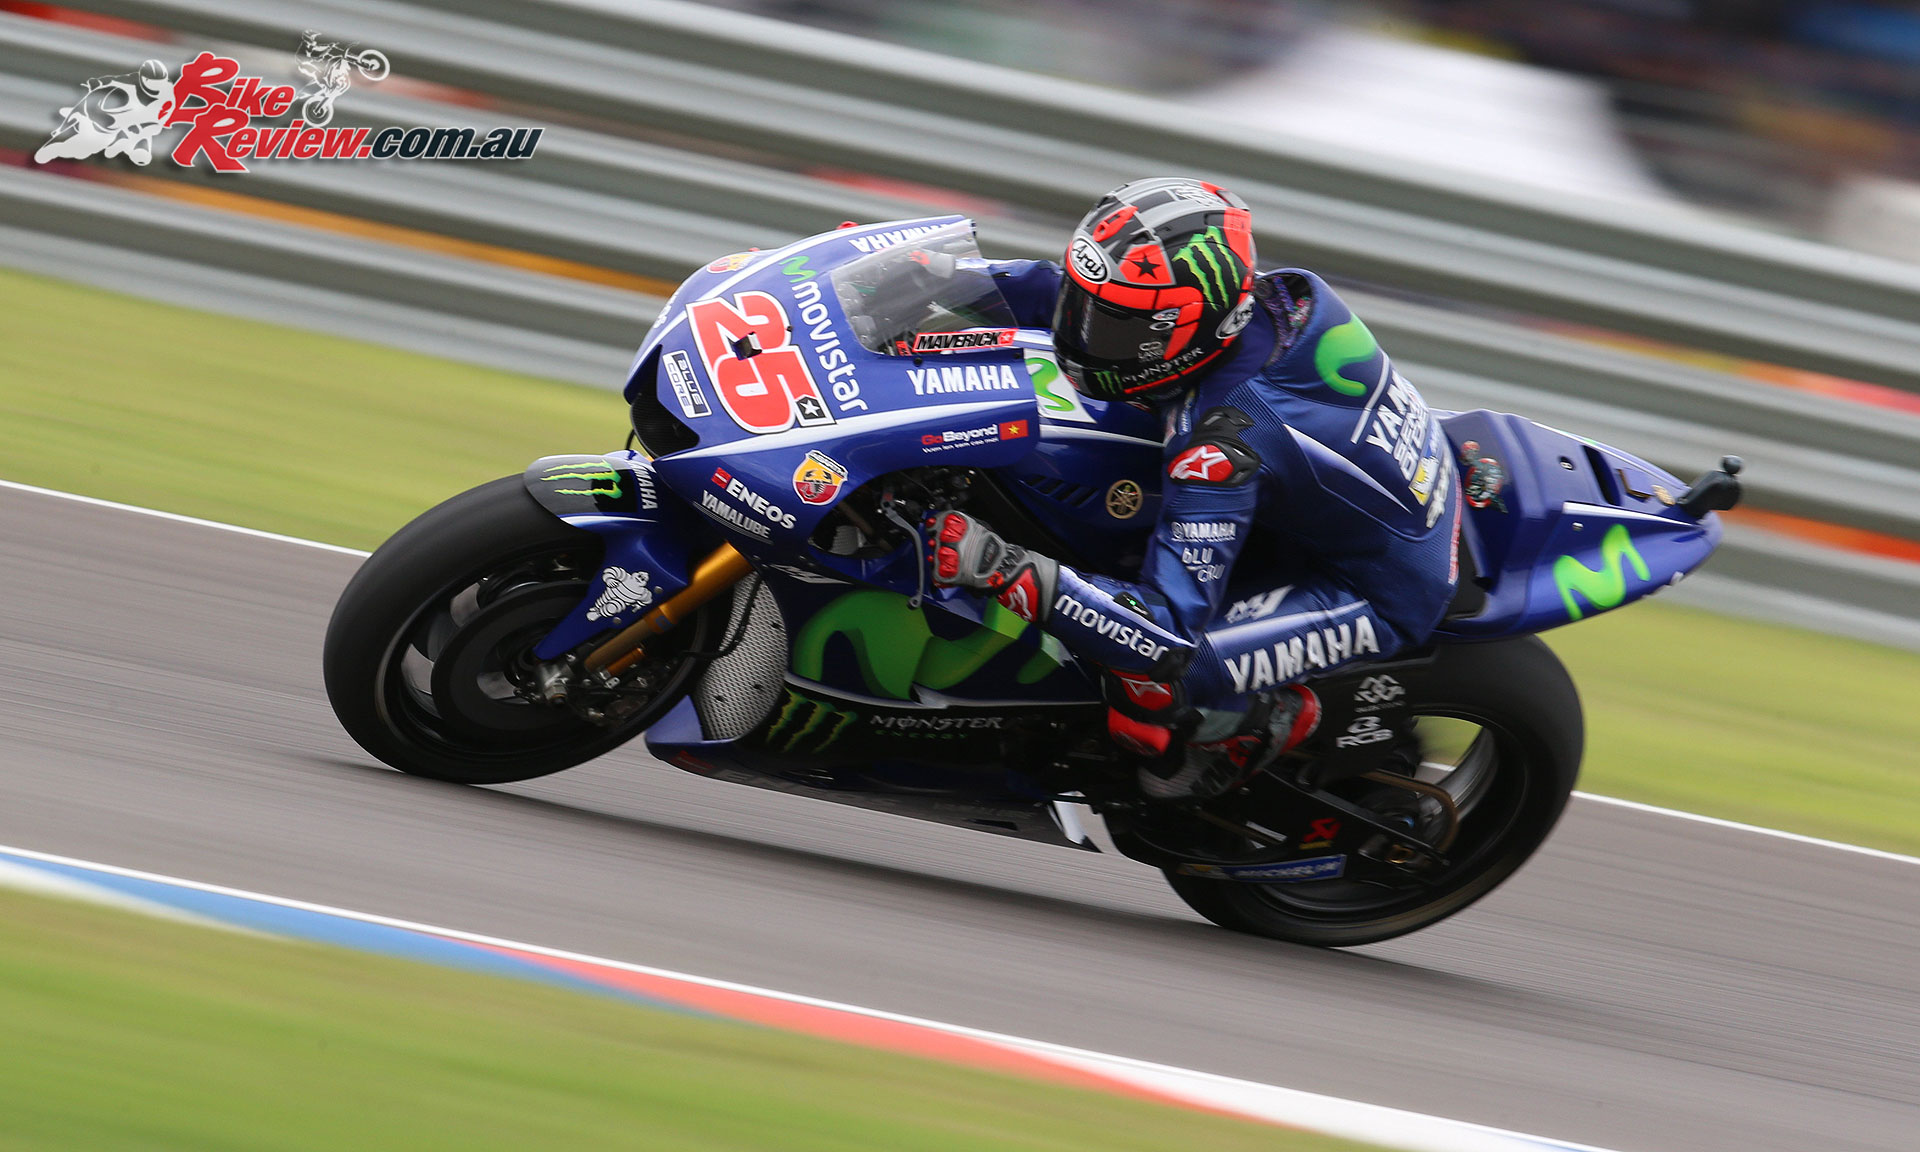 Maverick Vinales wins 2017 Argentina GP - Bike Review